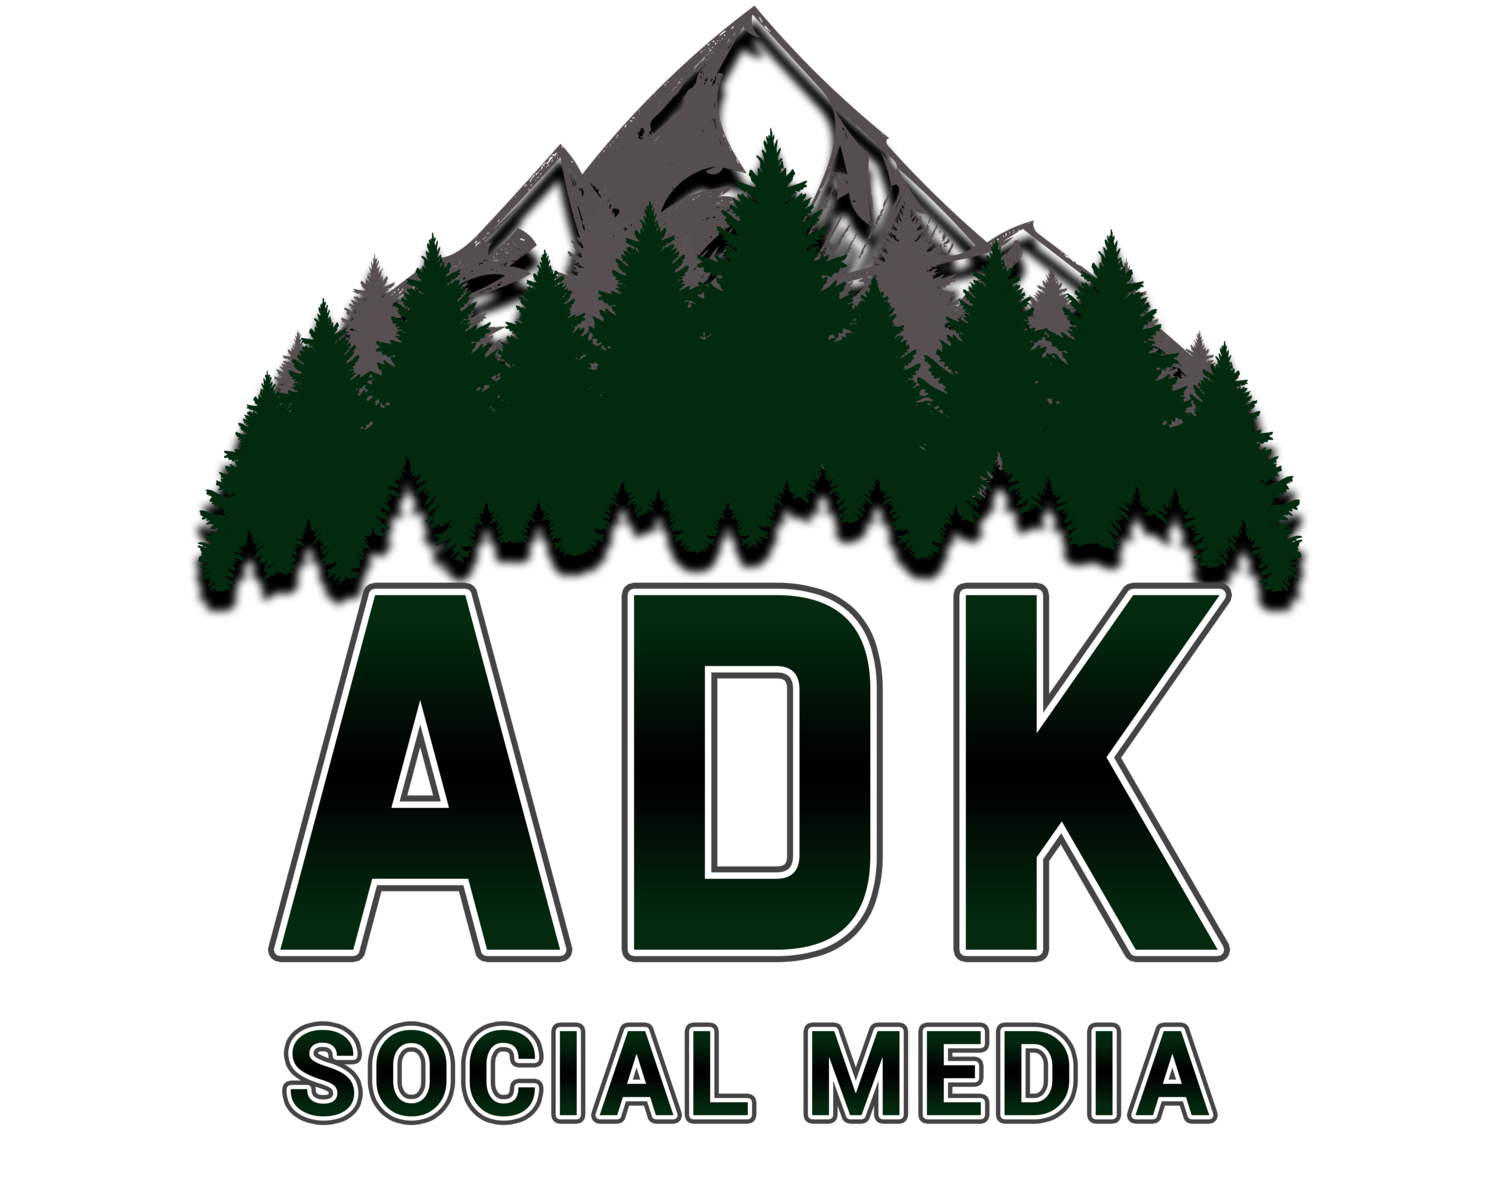 Adirondack Social Media: Digital Marketing Agency in Albany, NY